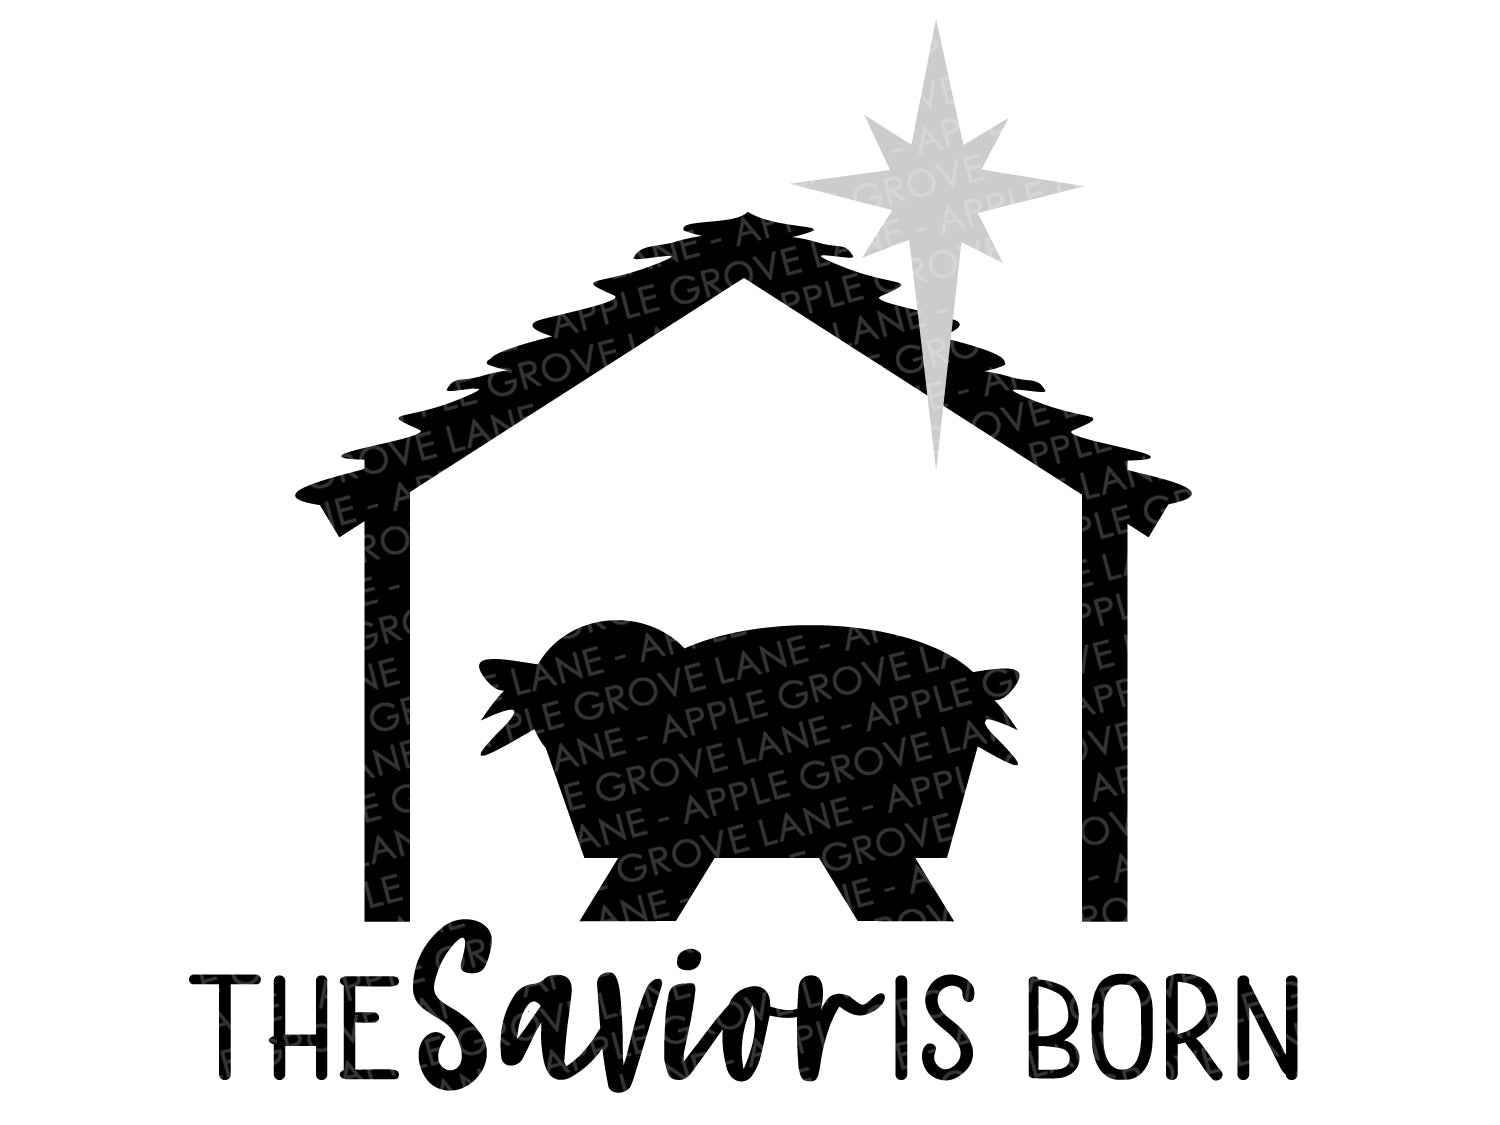 The Savior Is Born Svg - Nativity Svg - Savior Svg - Jesus Svg - Manger Svg - Christmas Svg - Nativity Star Svg - Svg Eps Dxf Png